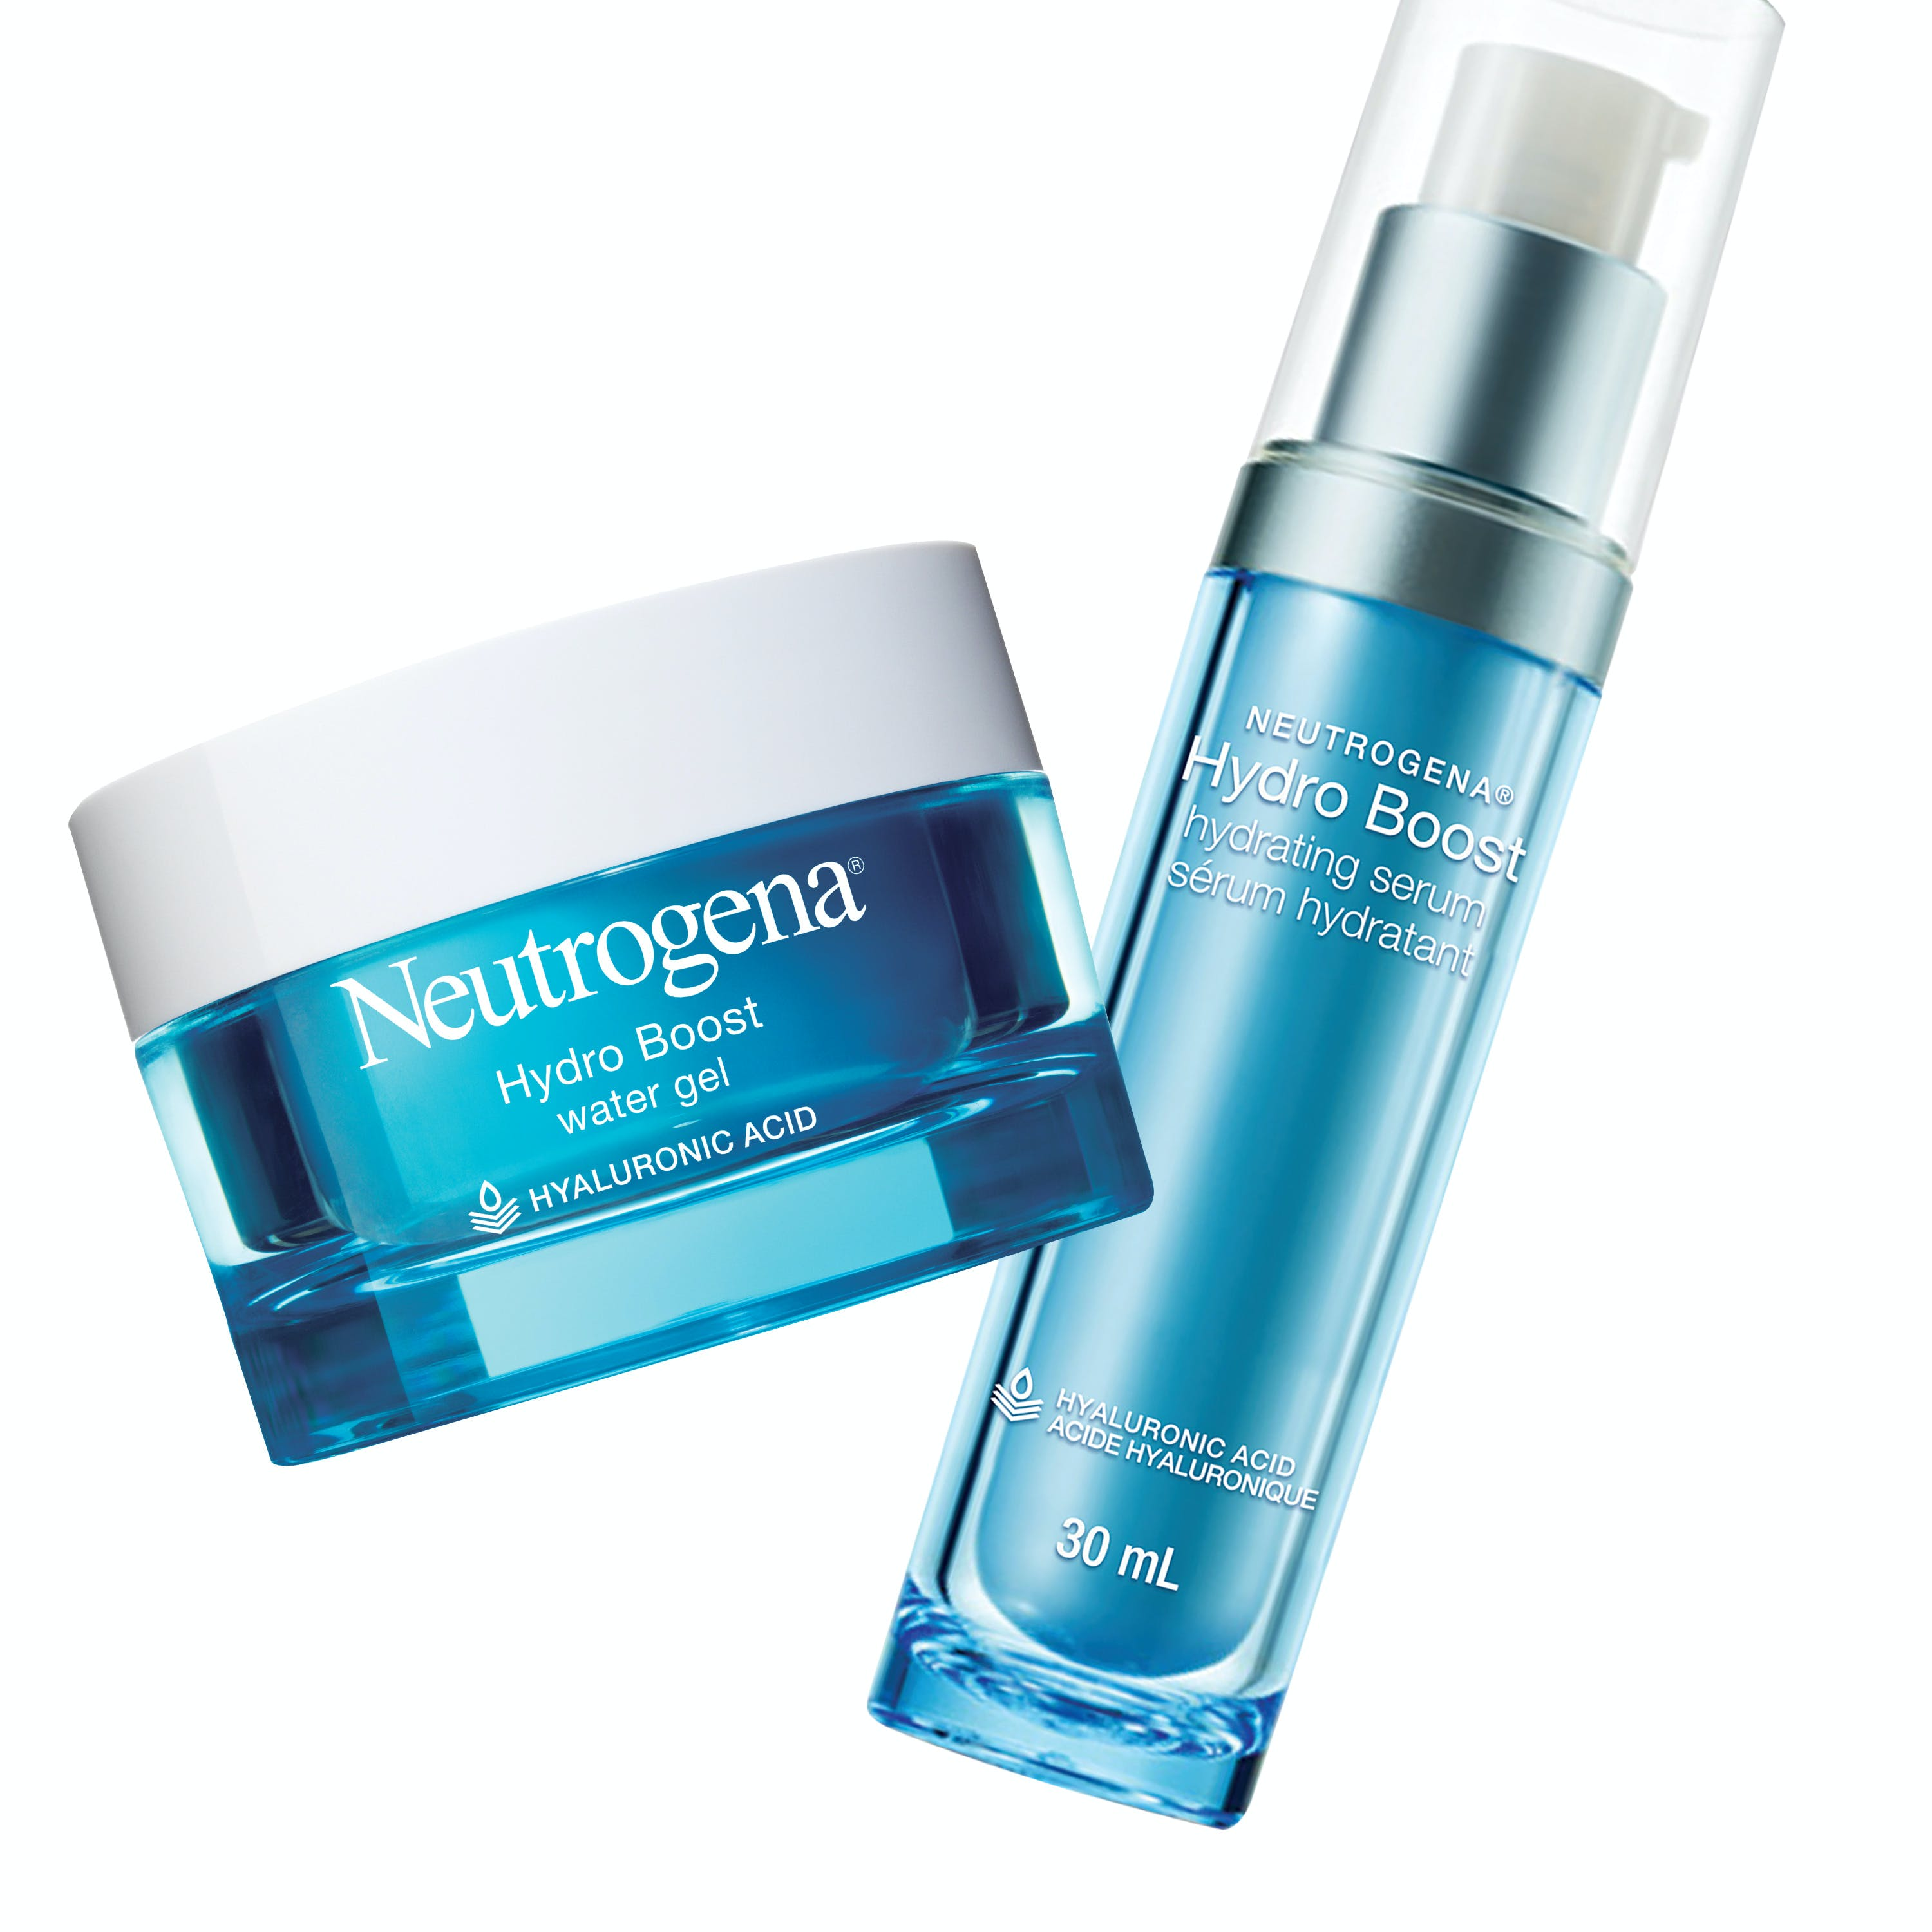 Neutrogena® Hydro Boost Hydration Set